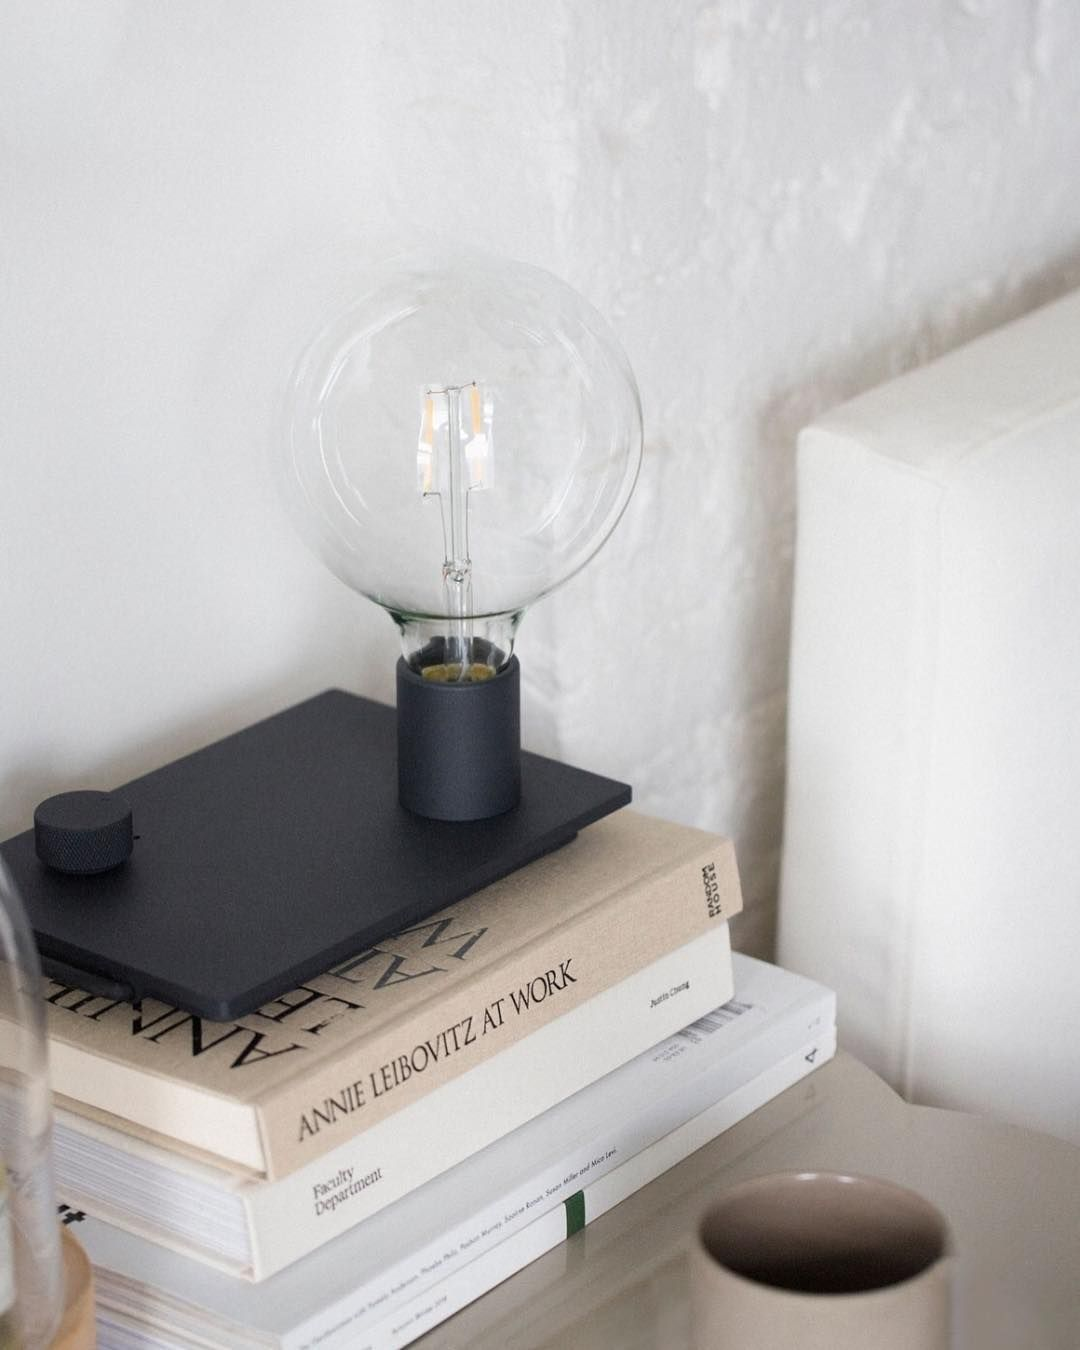 alter lighting. In Control:With A Dial To Alter The Volume Of Light Control Table Lamp Lighting